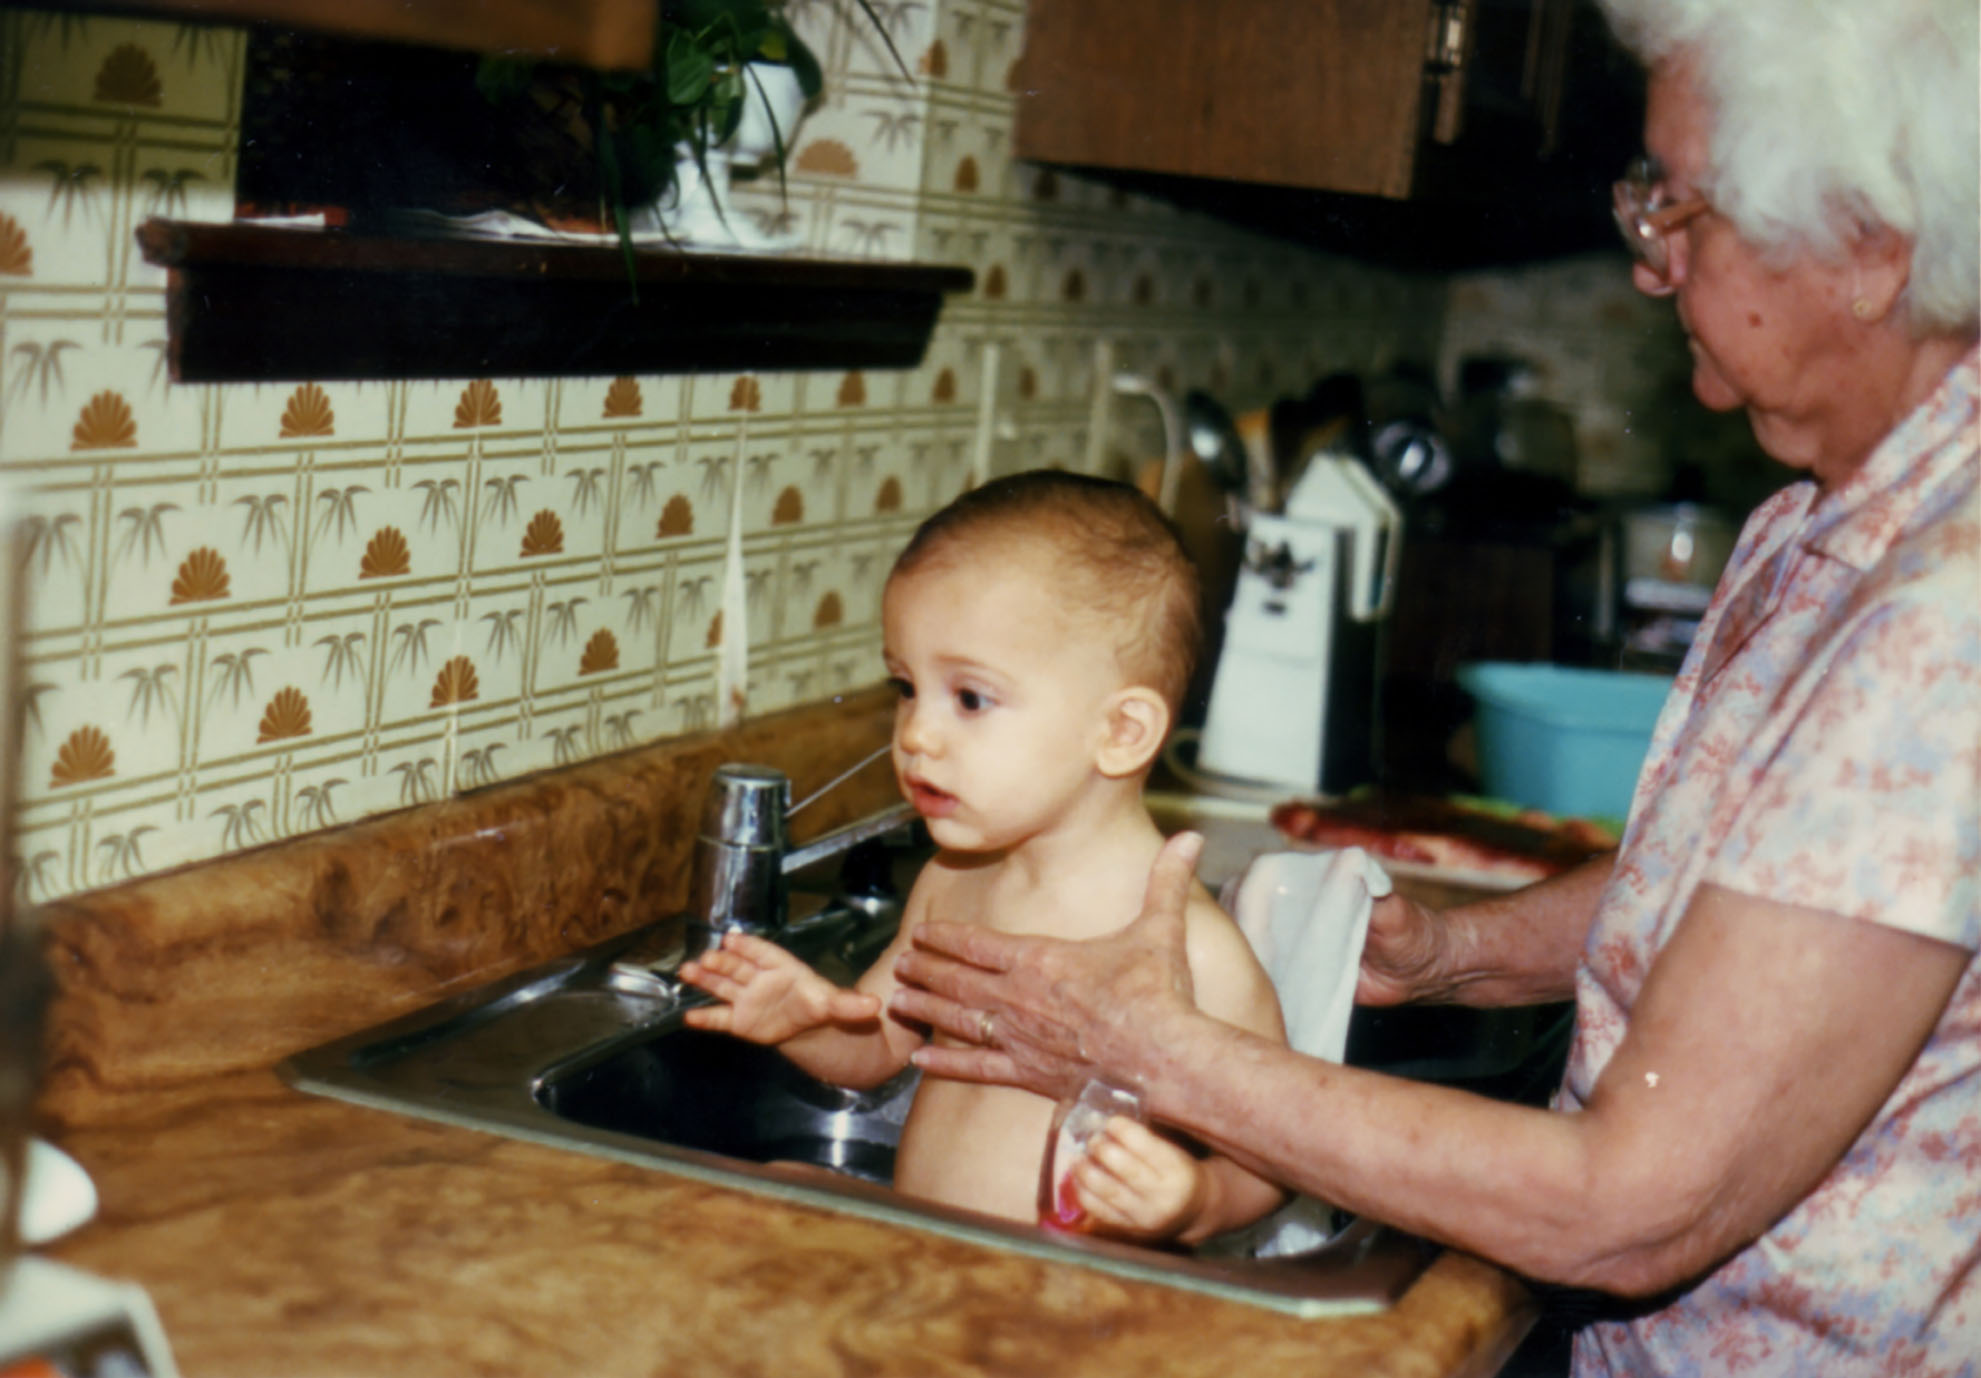 a photo of my older brother eric getting a sink bath from our great grandmother, circa 1986-ish